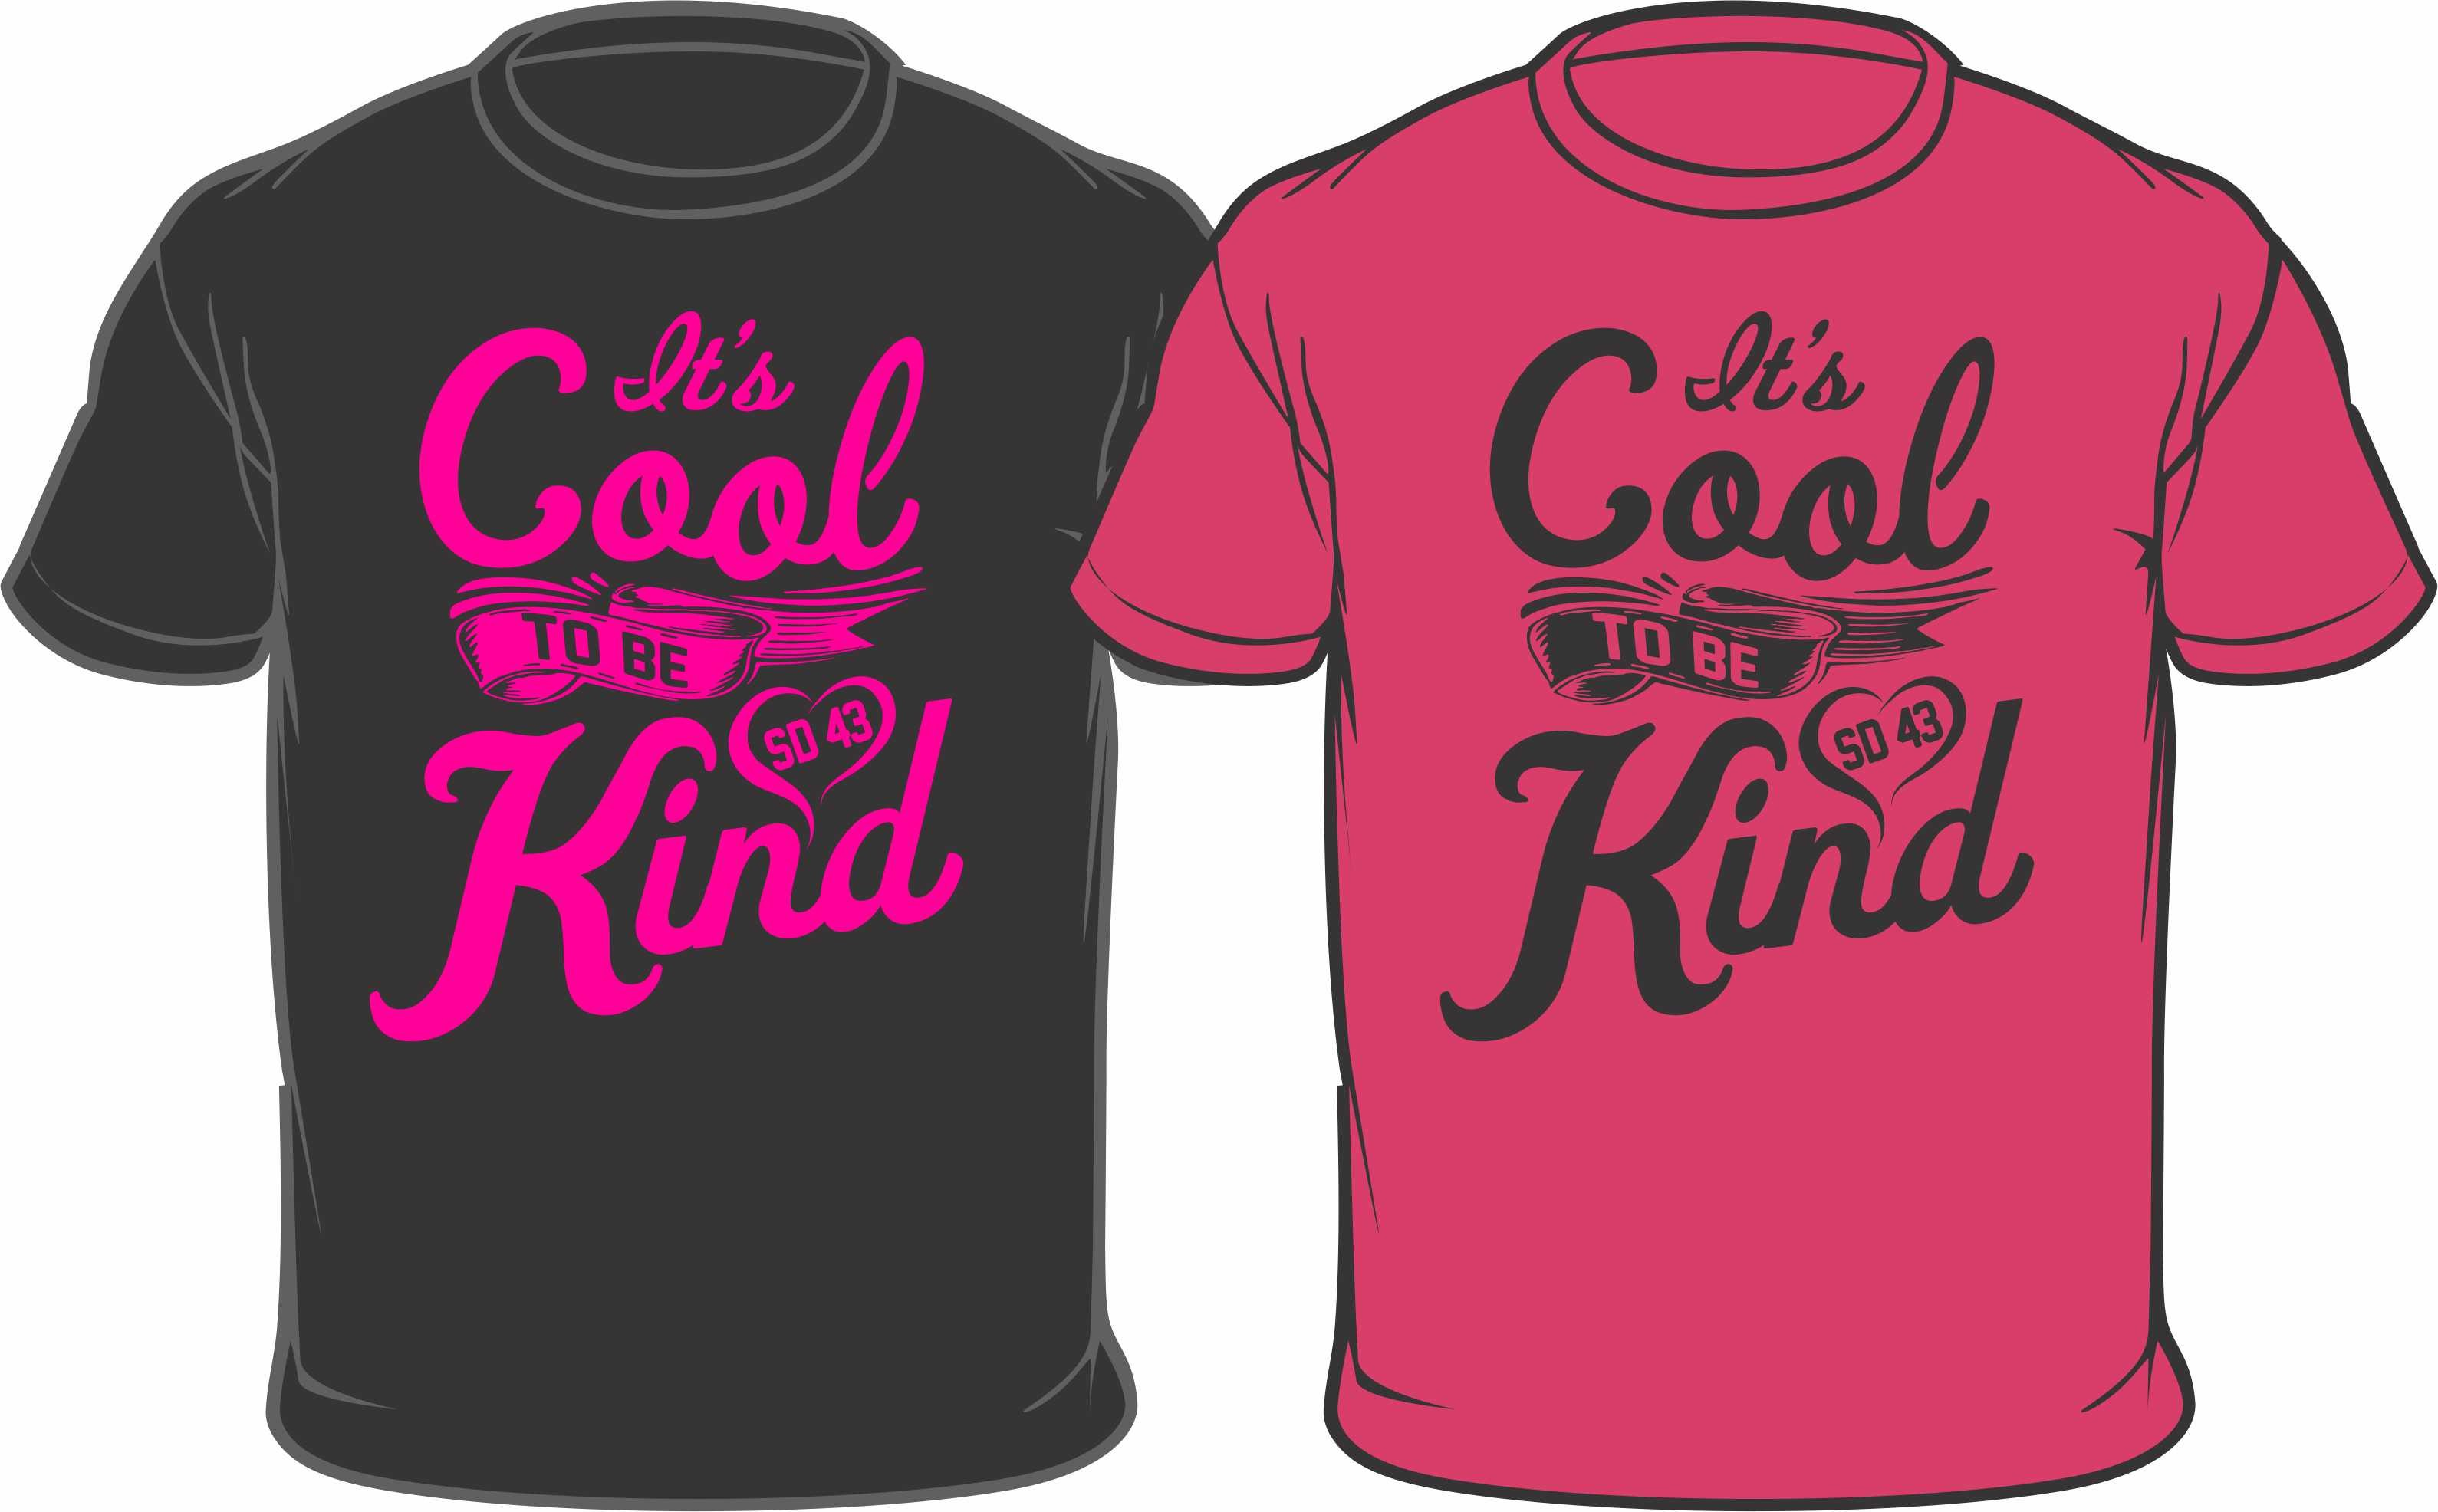 Pink Tshirt day is coming up !!!